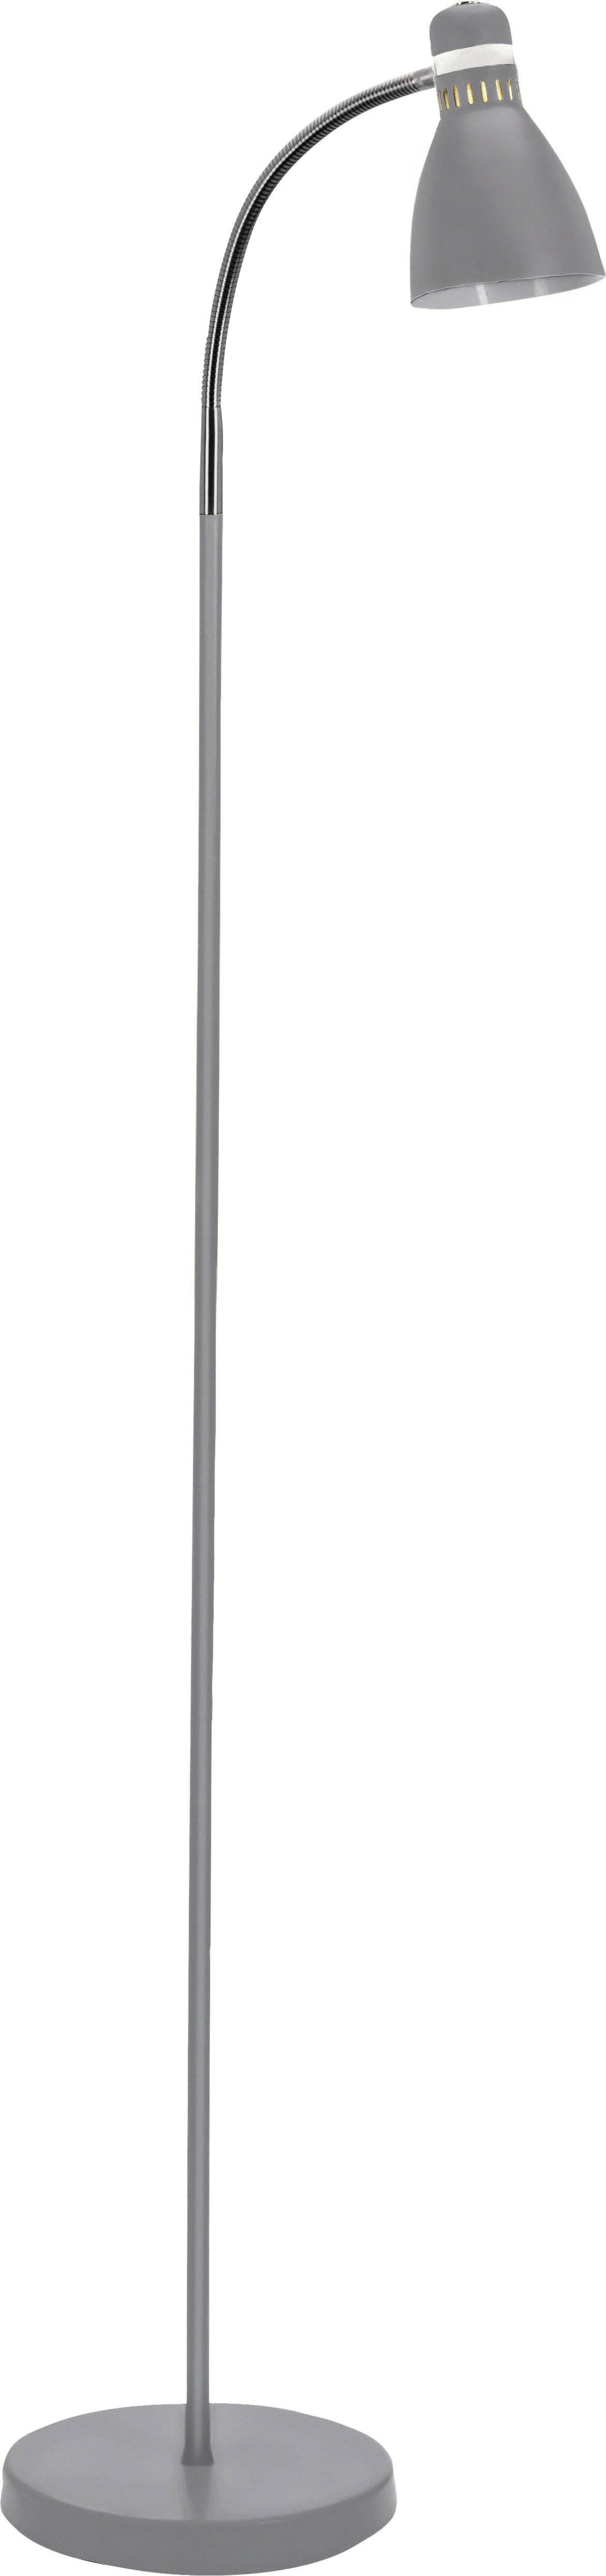 colourmatch dent desk style floor lamp  flint grey.